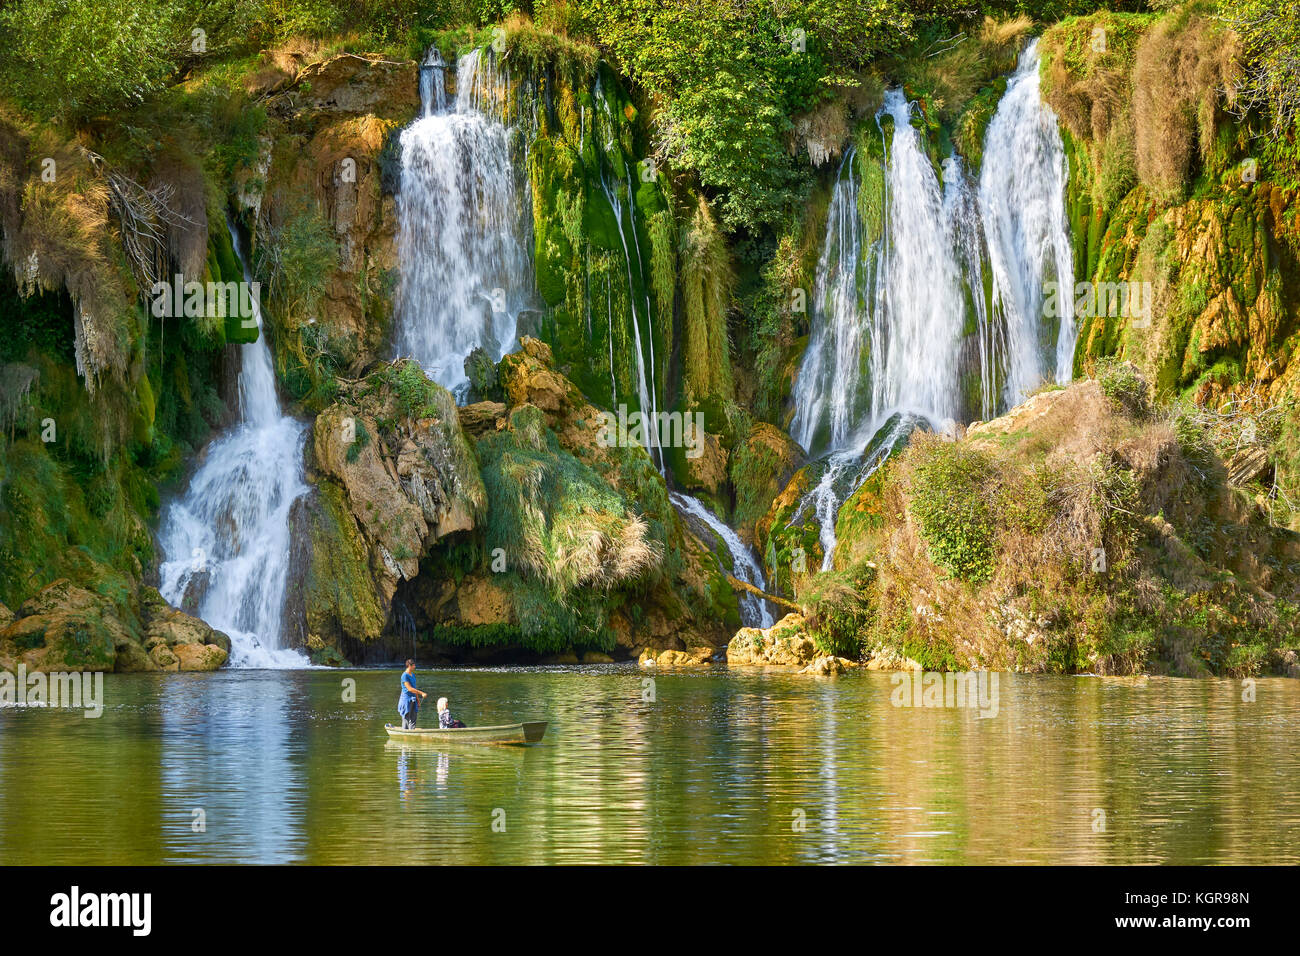 Tourists on the boat, Kravica waterfalls, Bosnia and Hercegovina - Stock Image